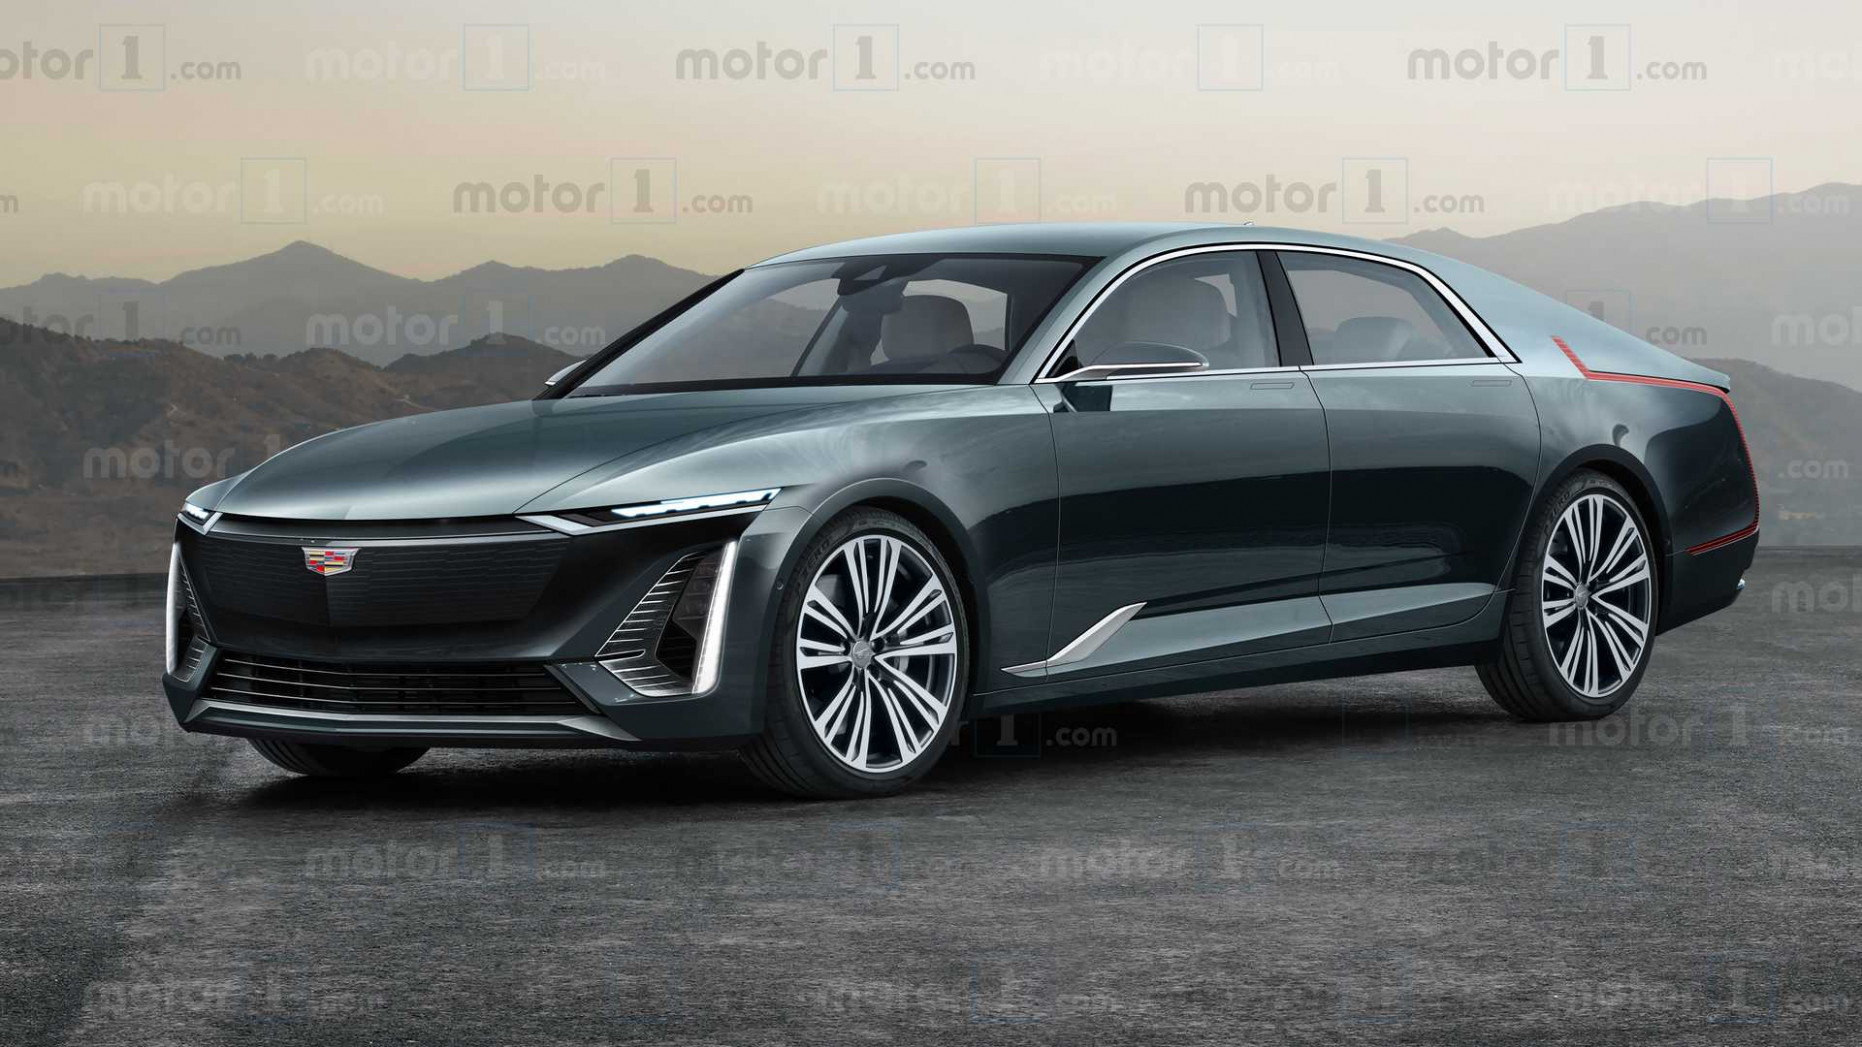 Redesign and Review New Cadillac Sedans For 2022